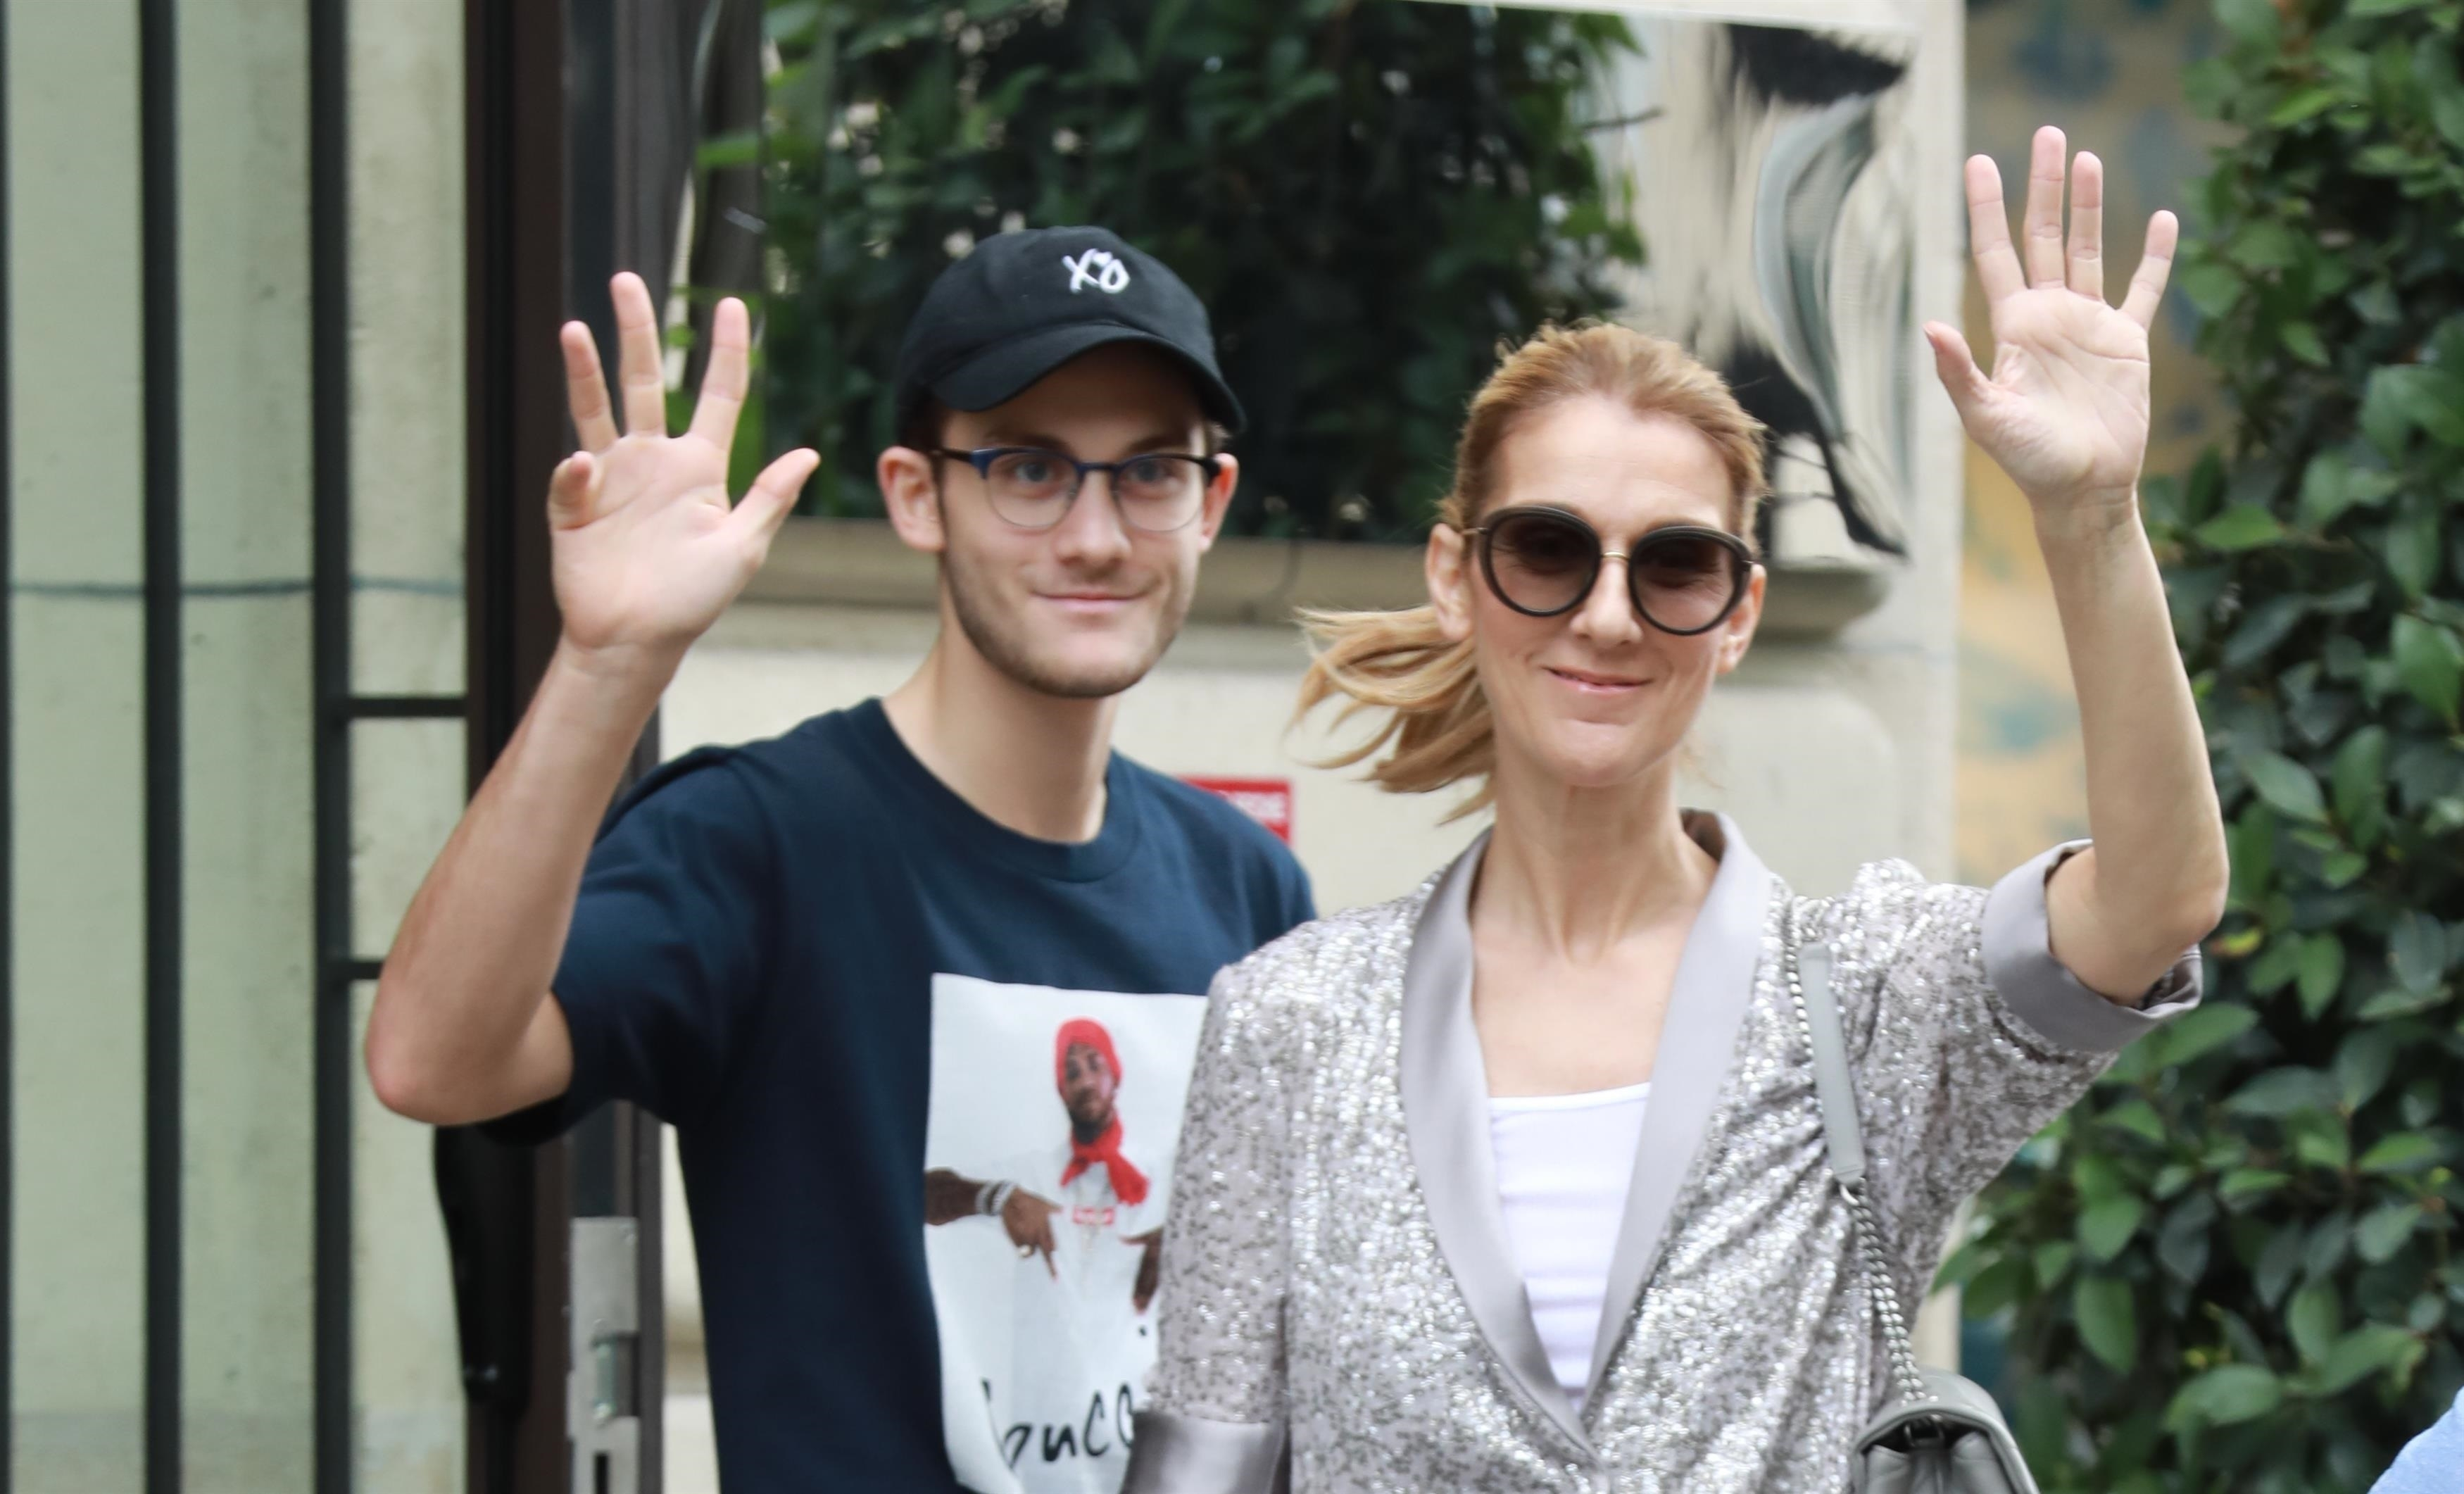 Celine Dion and her son Rene Charles Angelil leave the Royal Monceau hotel in Paris on July 19, 2017.